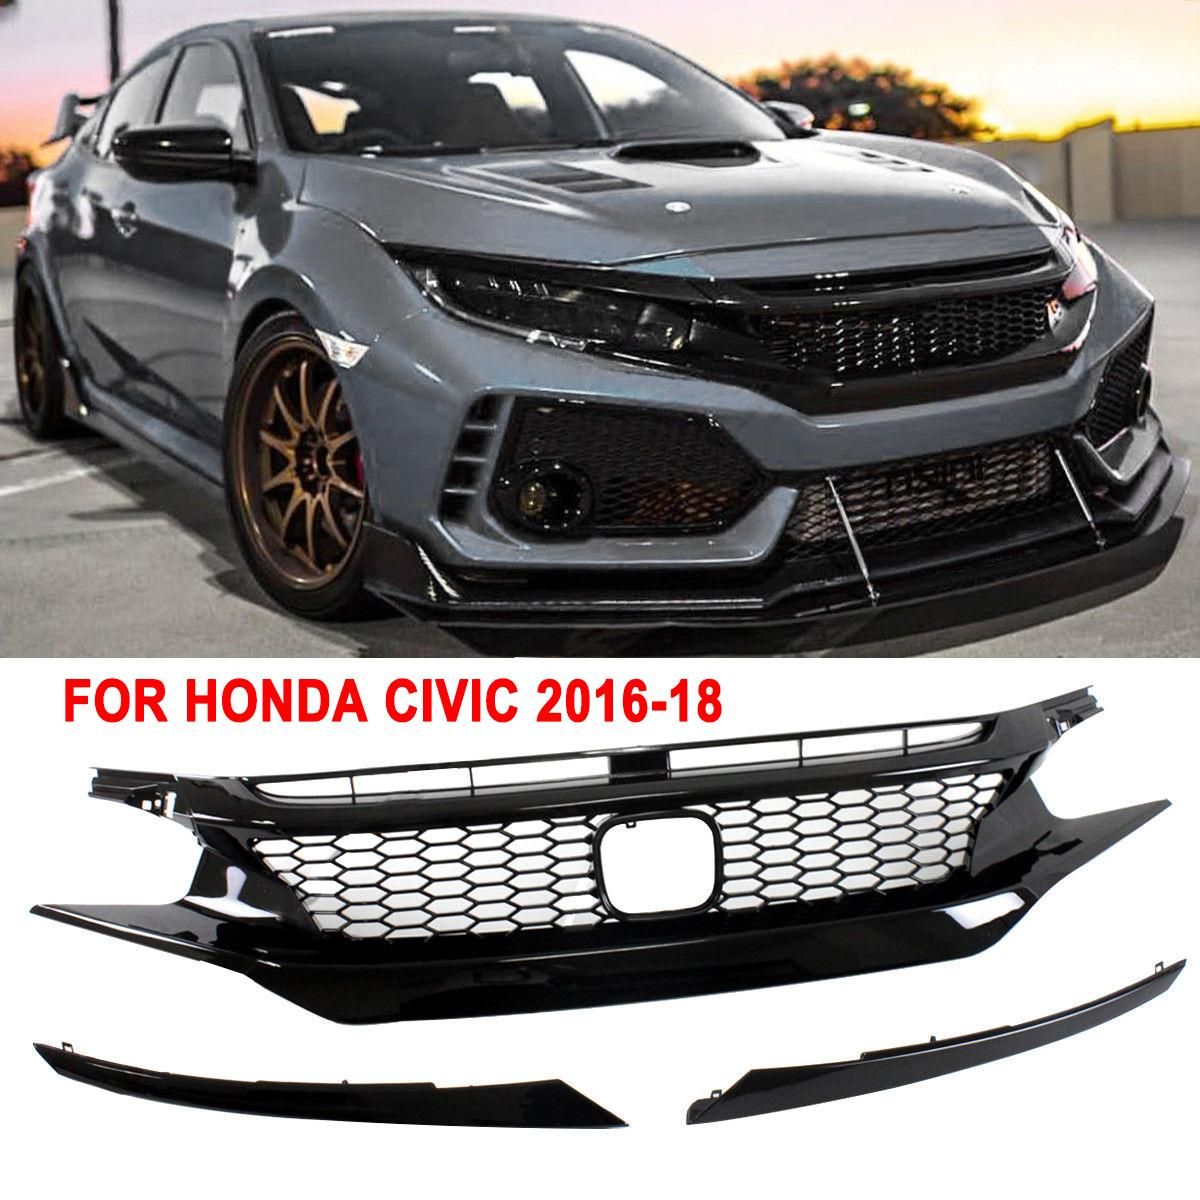 New Replacement Part For Honda For Civic 2016 2017 2018 2019 10th Gen JDM-CTR Style Glossy Black Mesh Front Hood Grille